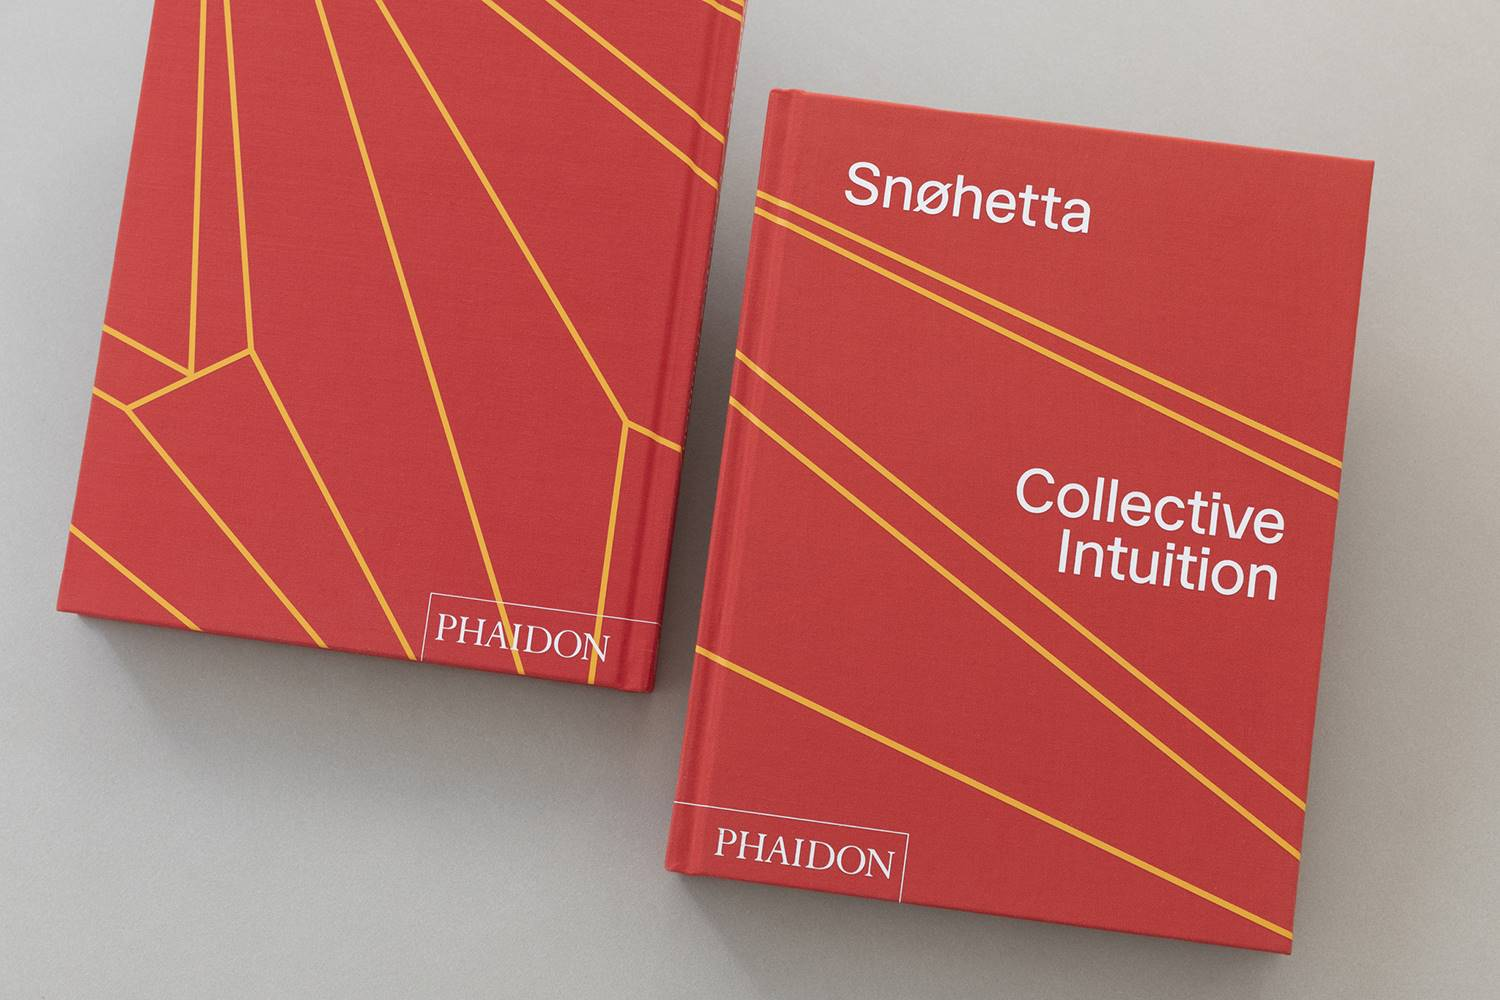 snøhetta collective intuition. [02] Snøhetta, Collective Intuition, Phaidon